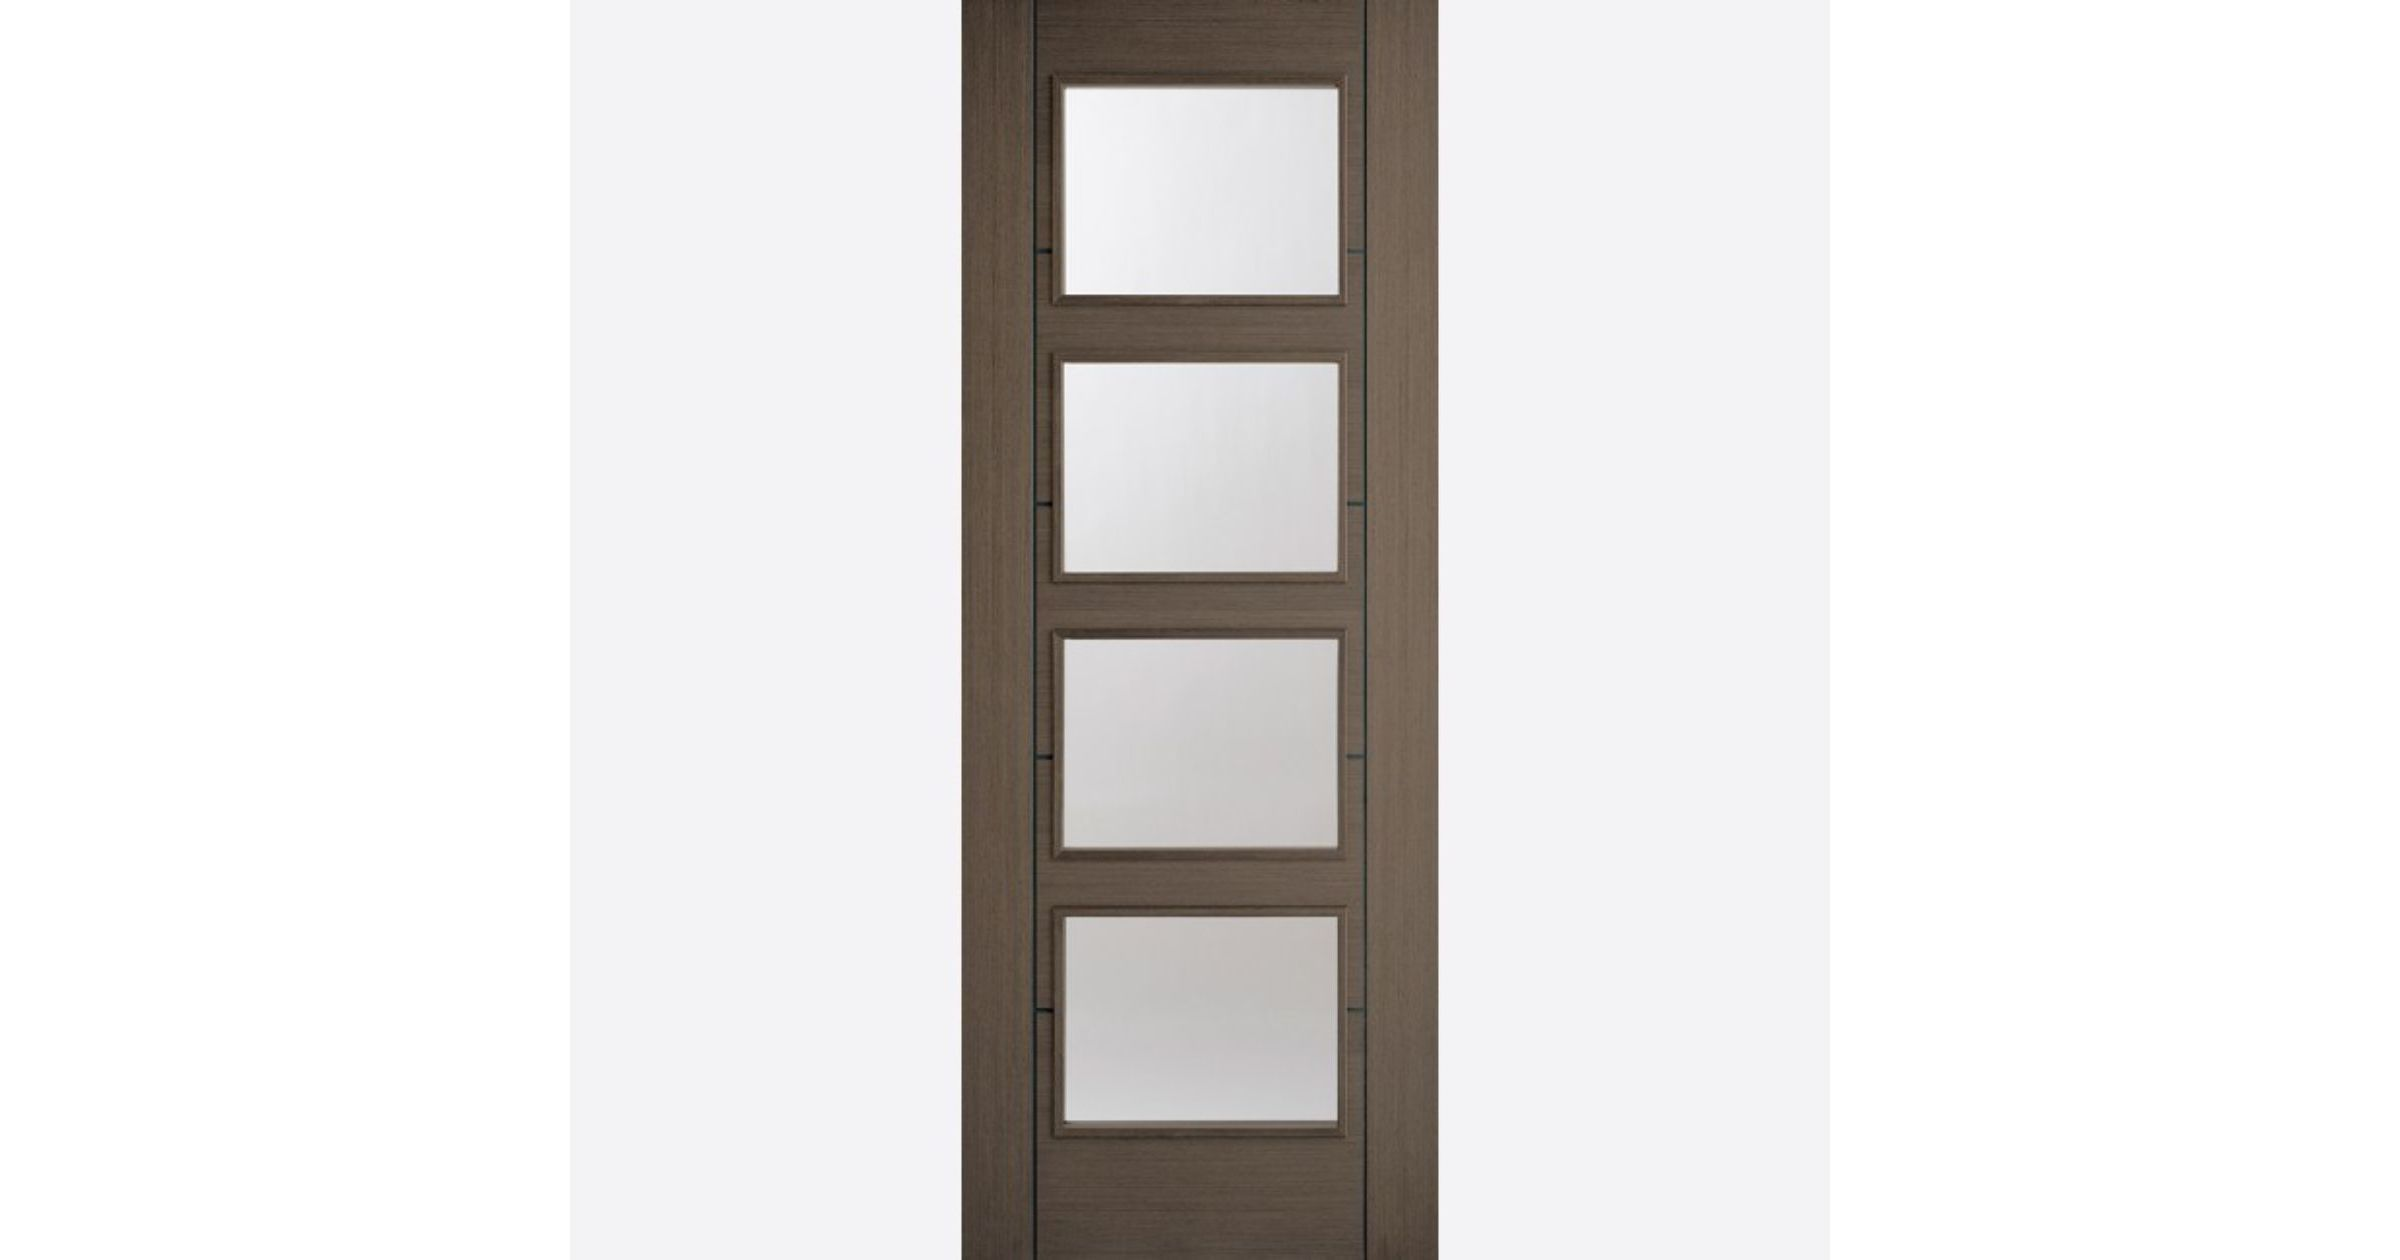 Vancouver Glazed Door: 4-light *Clear Glazed* *Pre-Finished Chocolate Grey* 35mm Internal - LPD Colour Doors